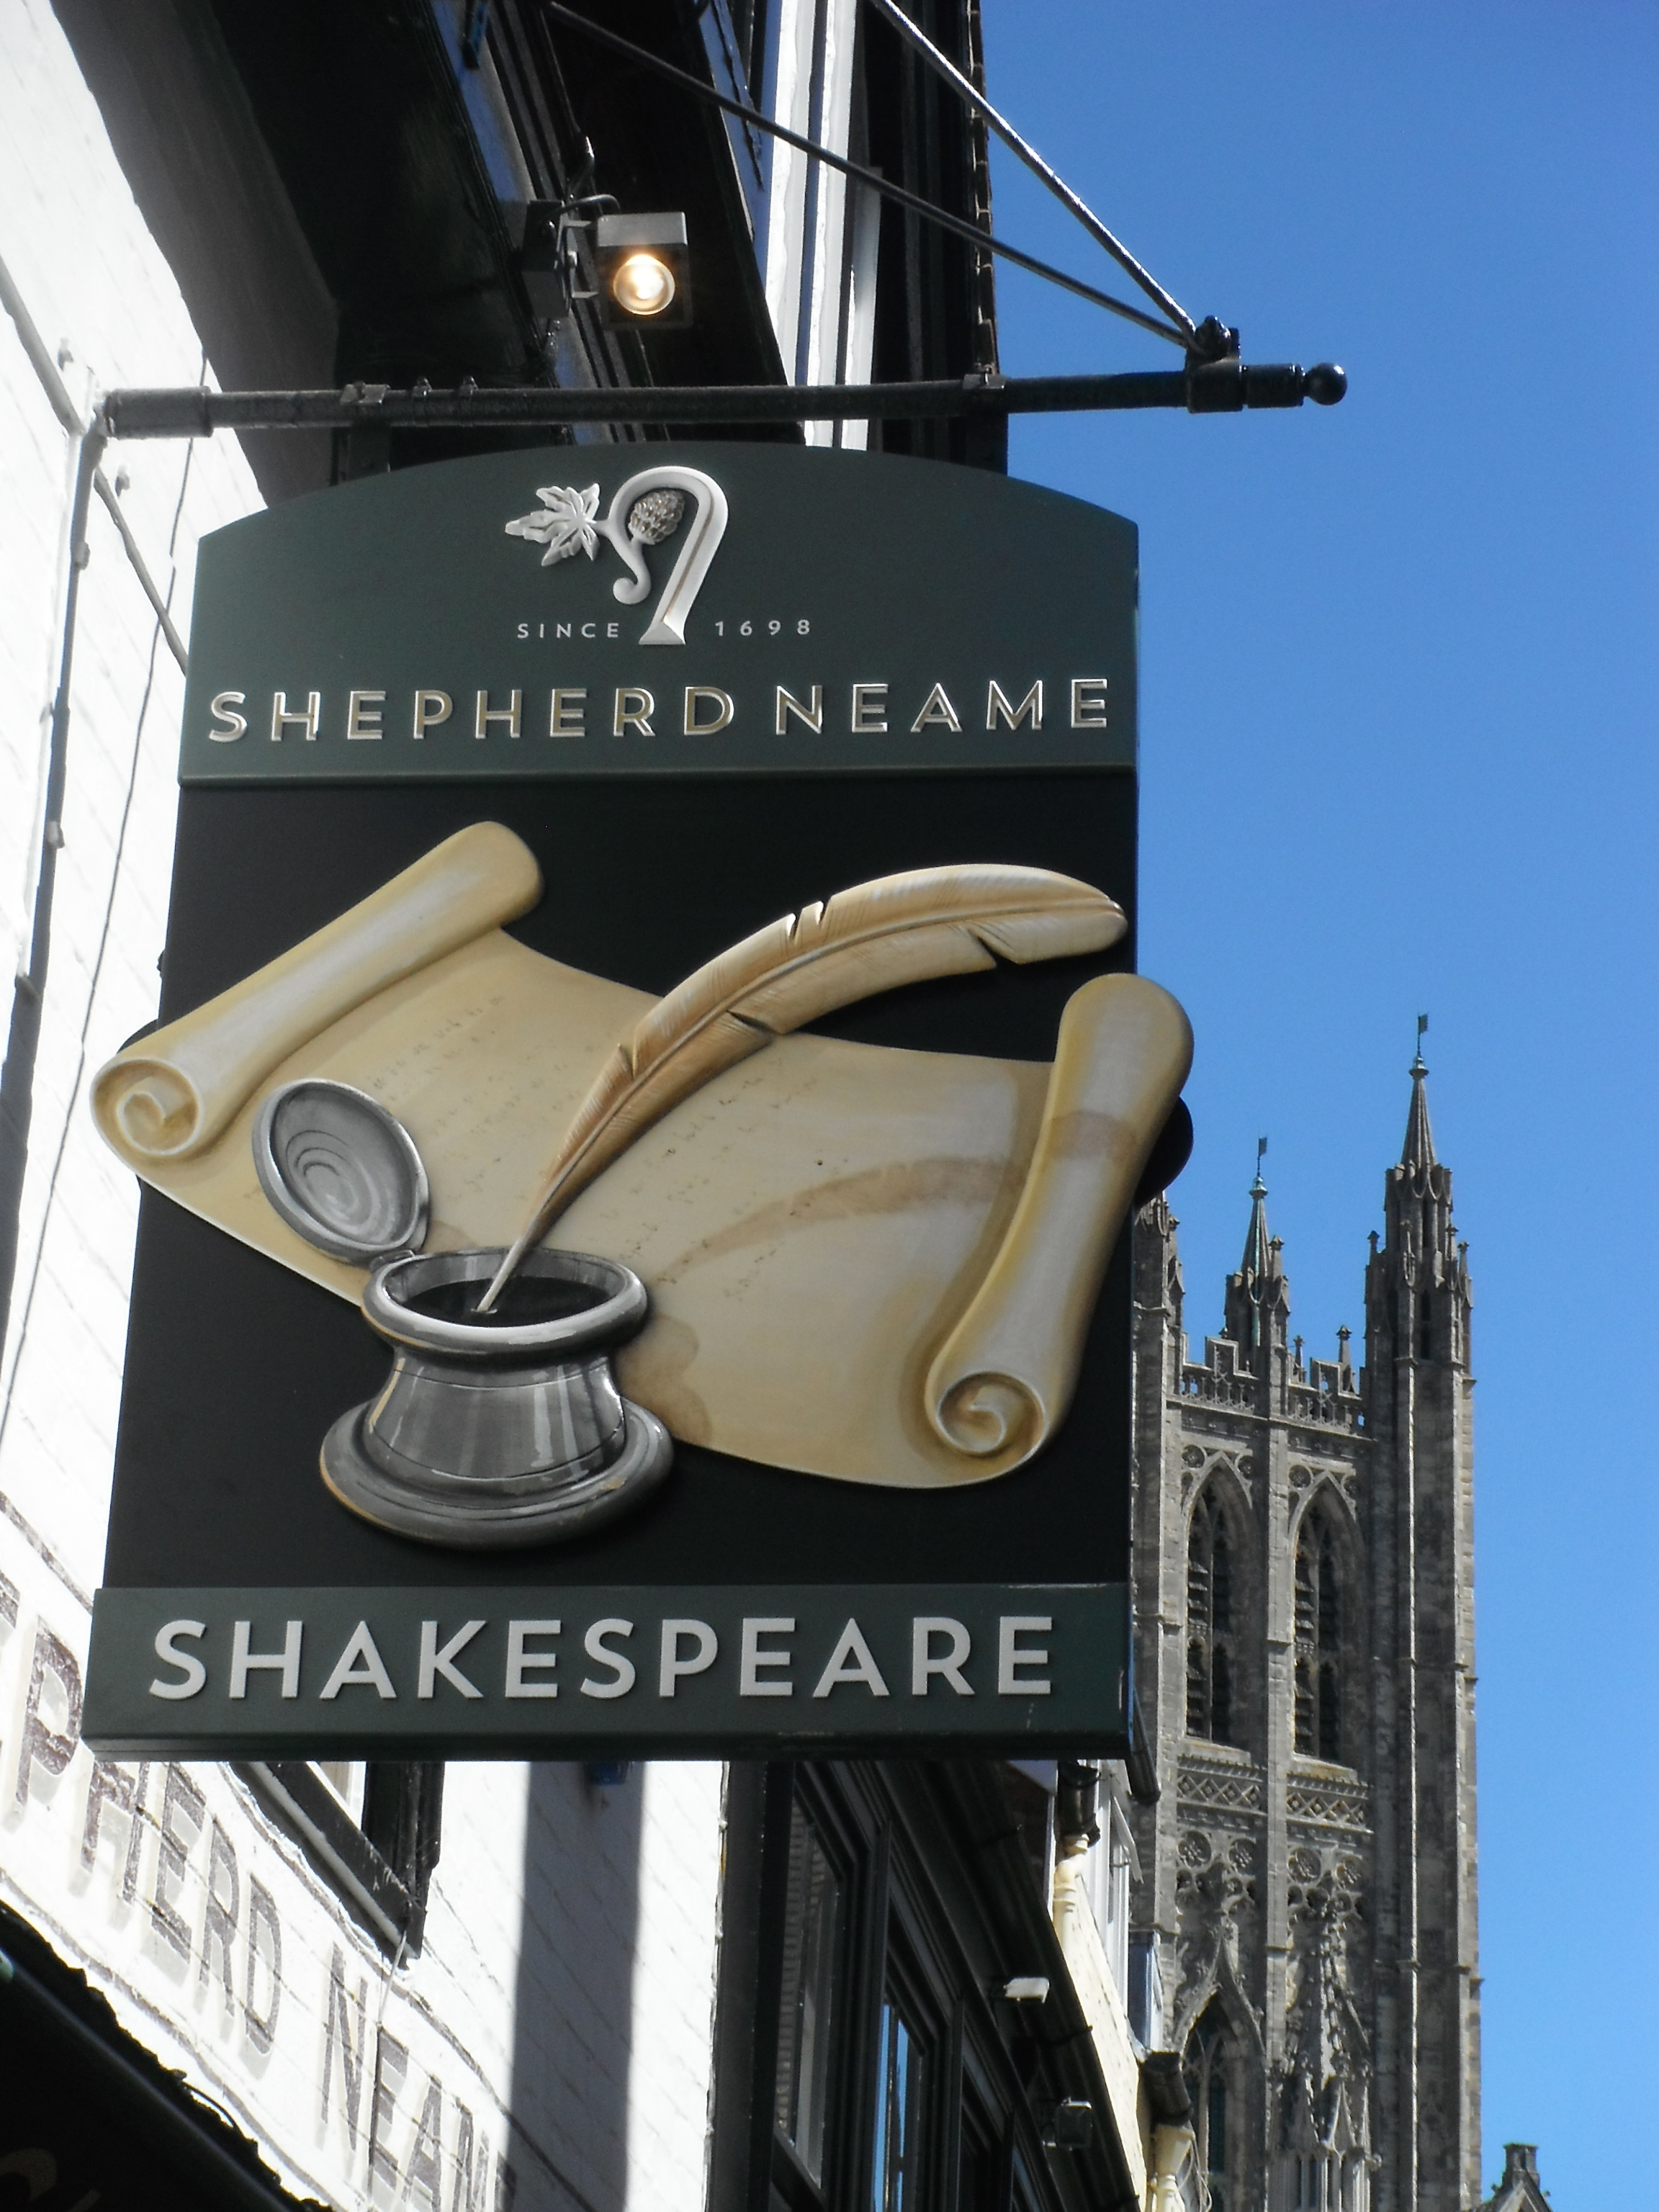 Photo taken by me - The Shakespeare pub sign - Canterbury